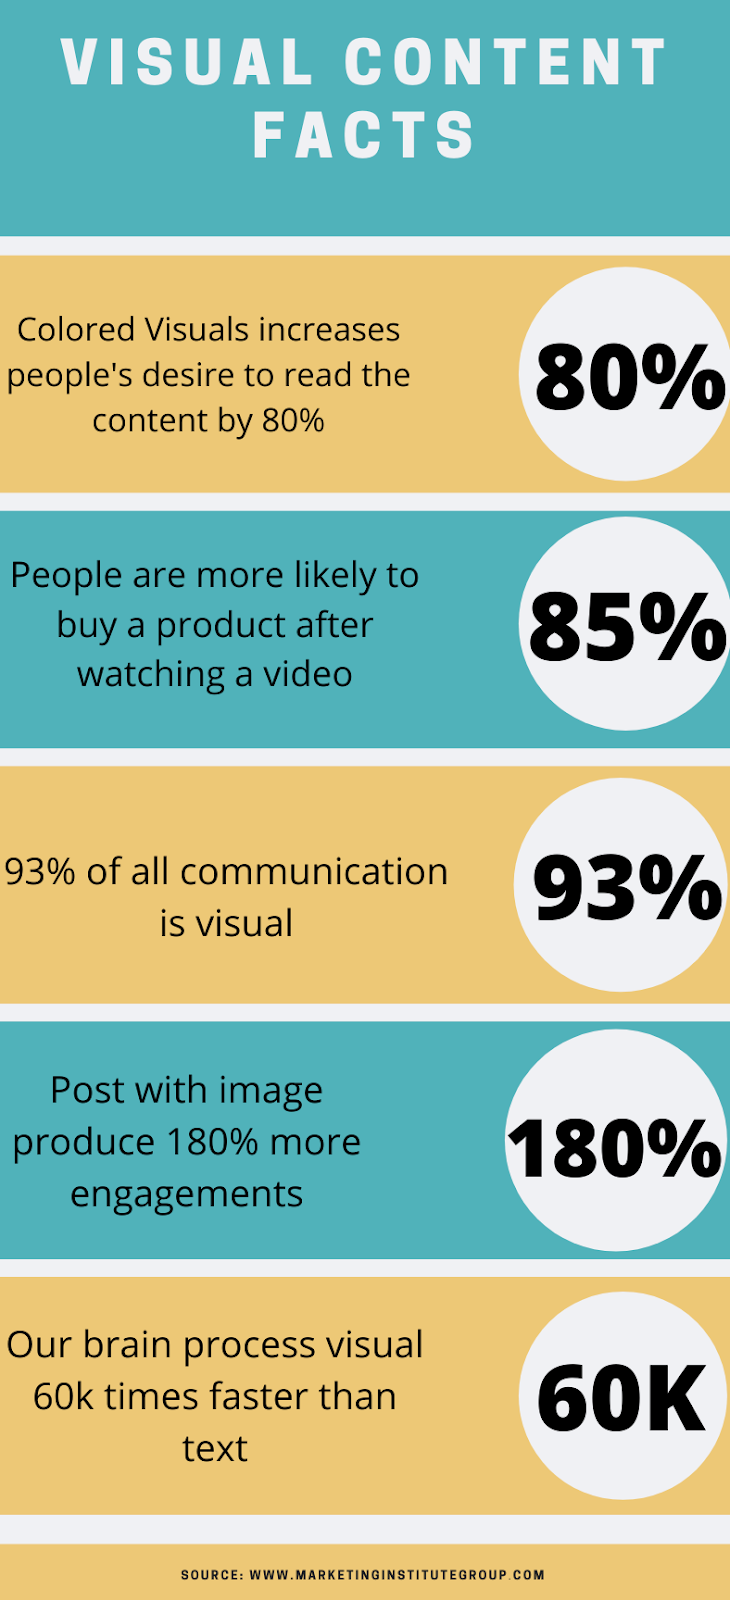 visual content facts